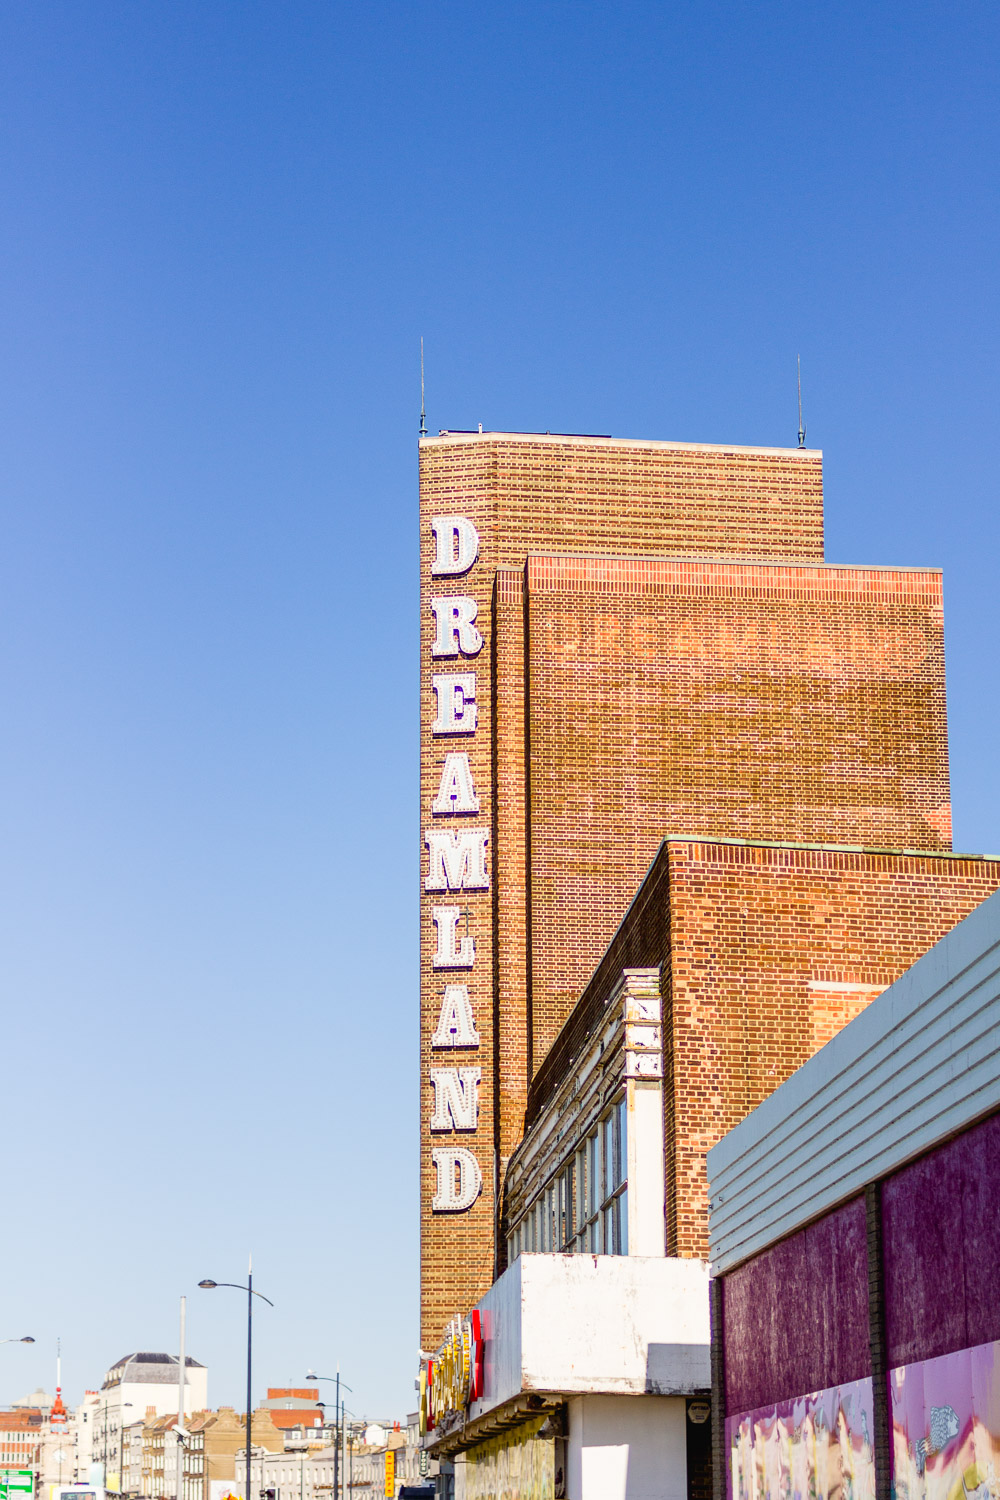 margate dreamland sign sixties